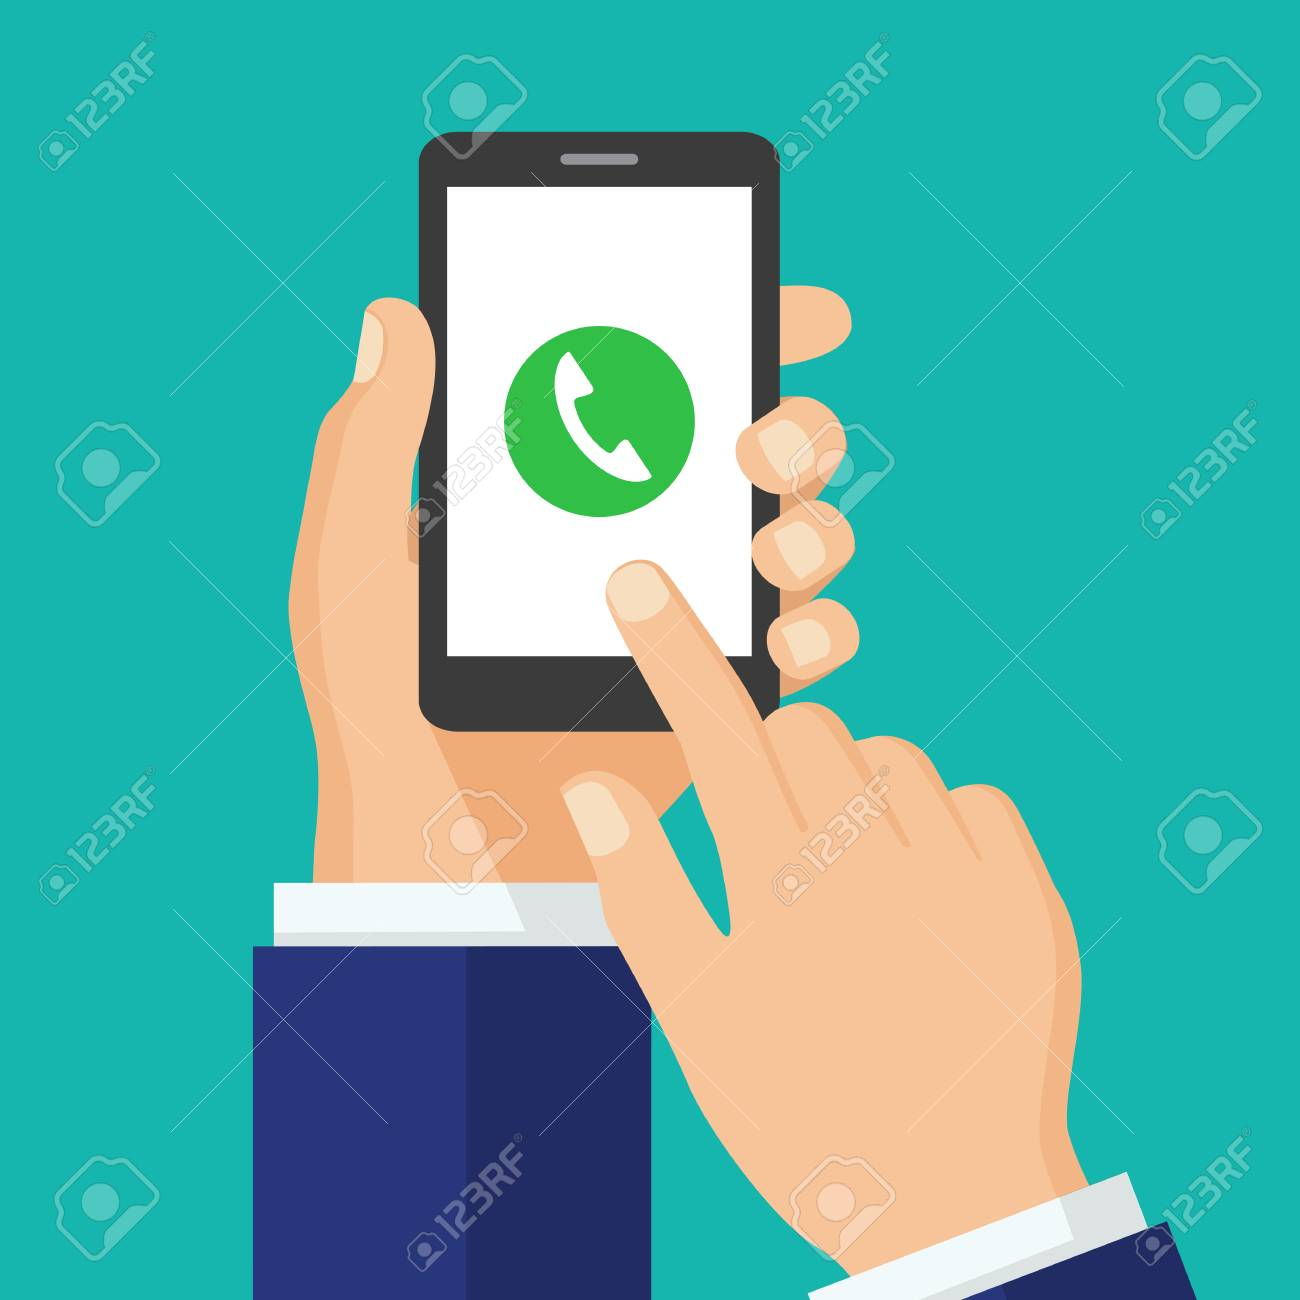 Phone call button on smartphone screen  Mobile phone call consept